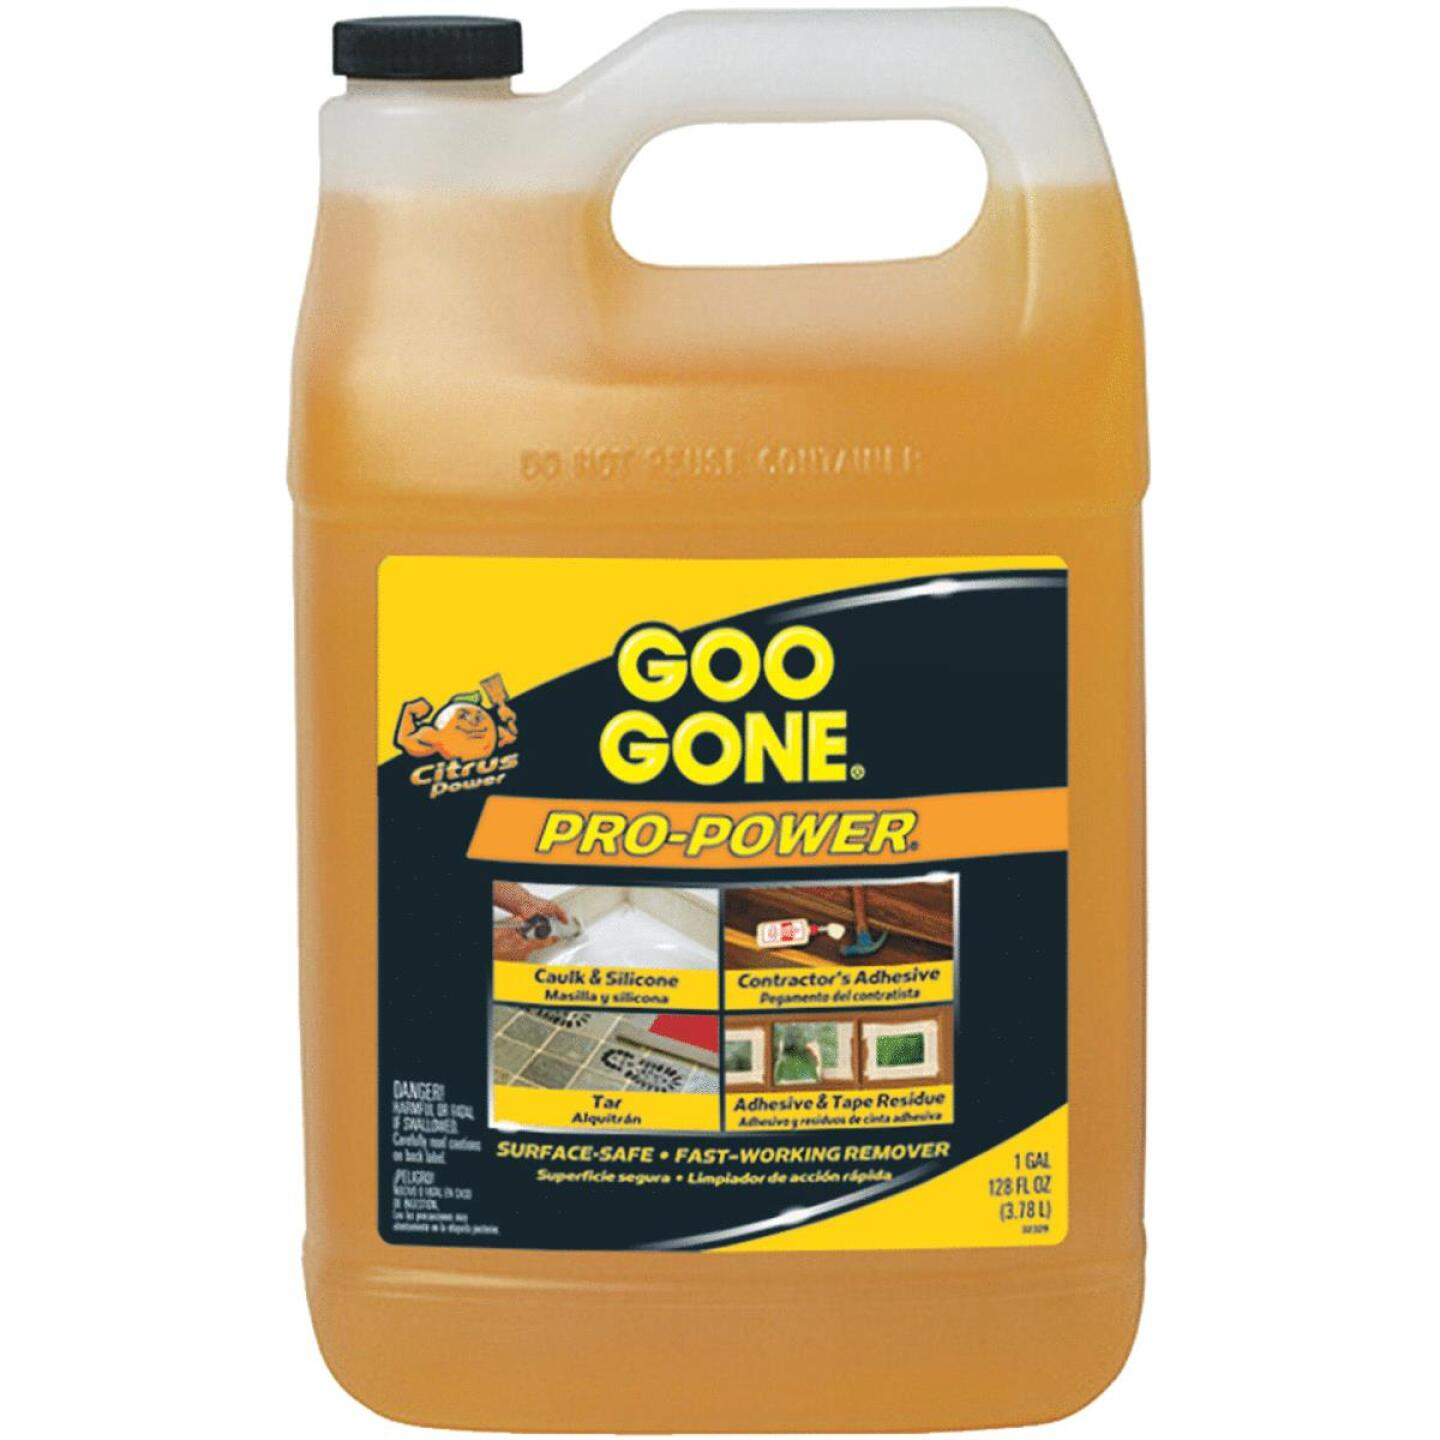 Goo Gone 1 Gal. Pro-Power Adhesive Remover Image 73